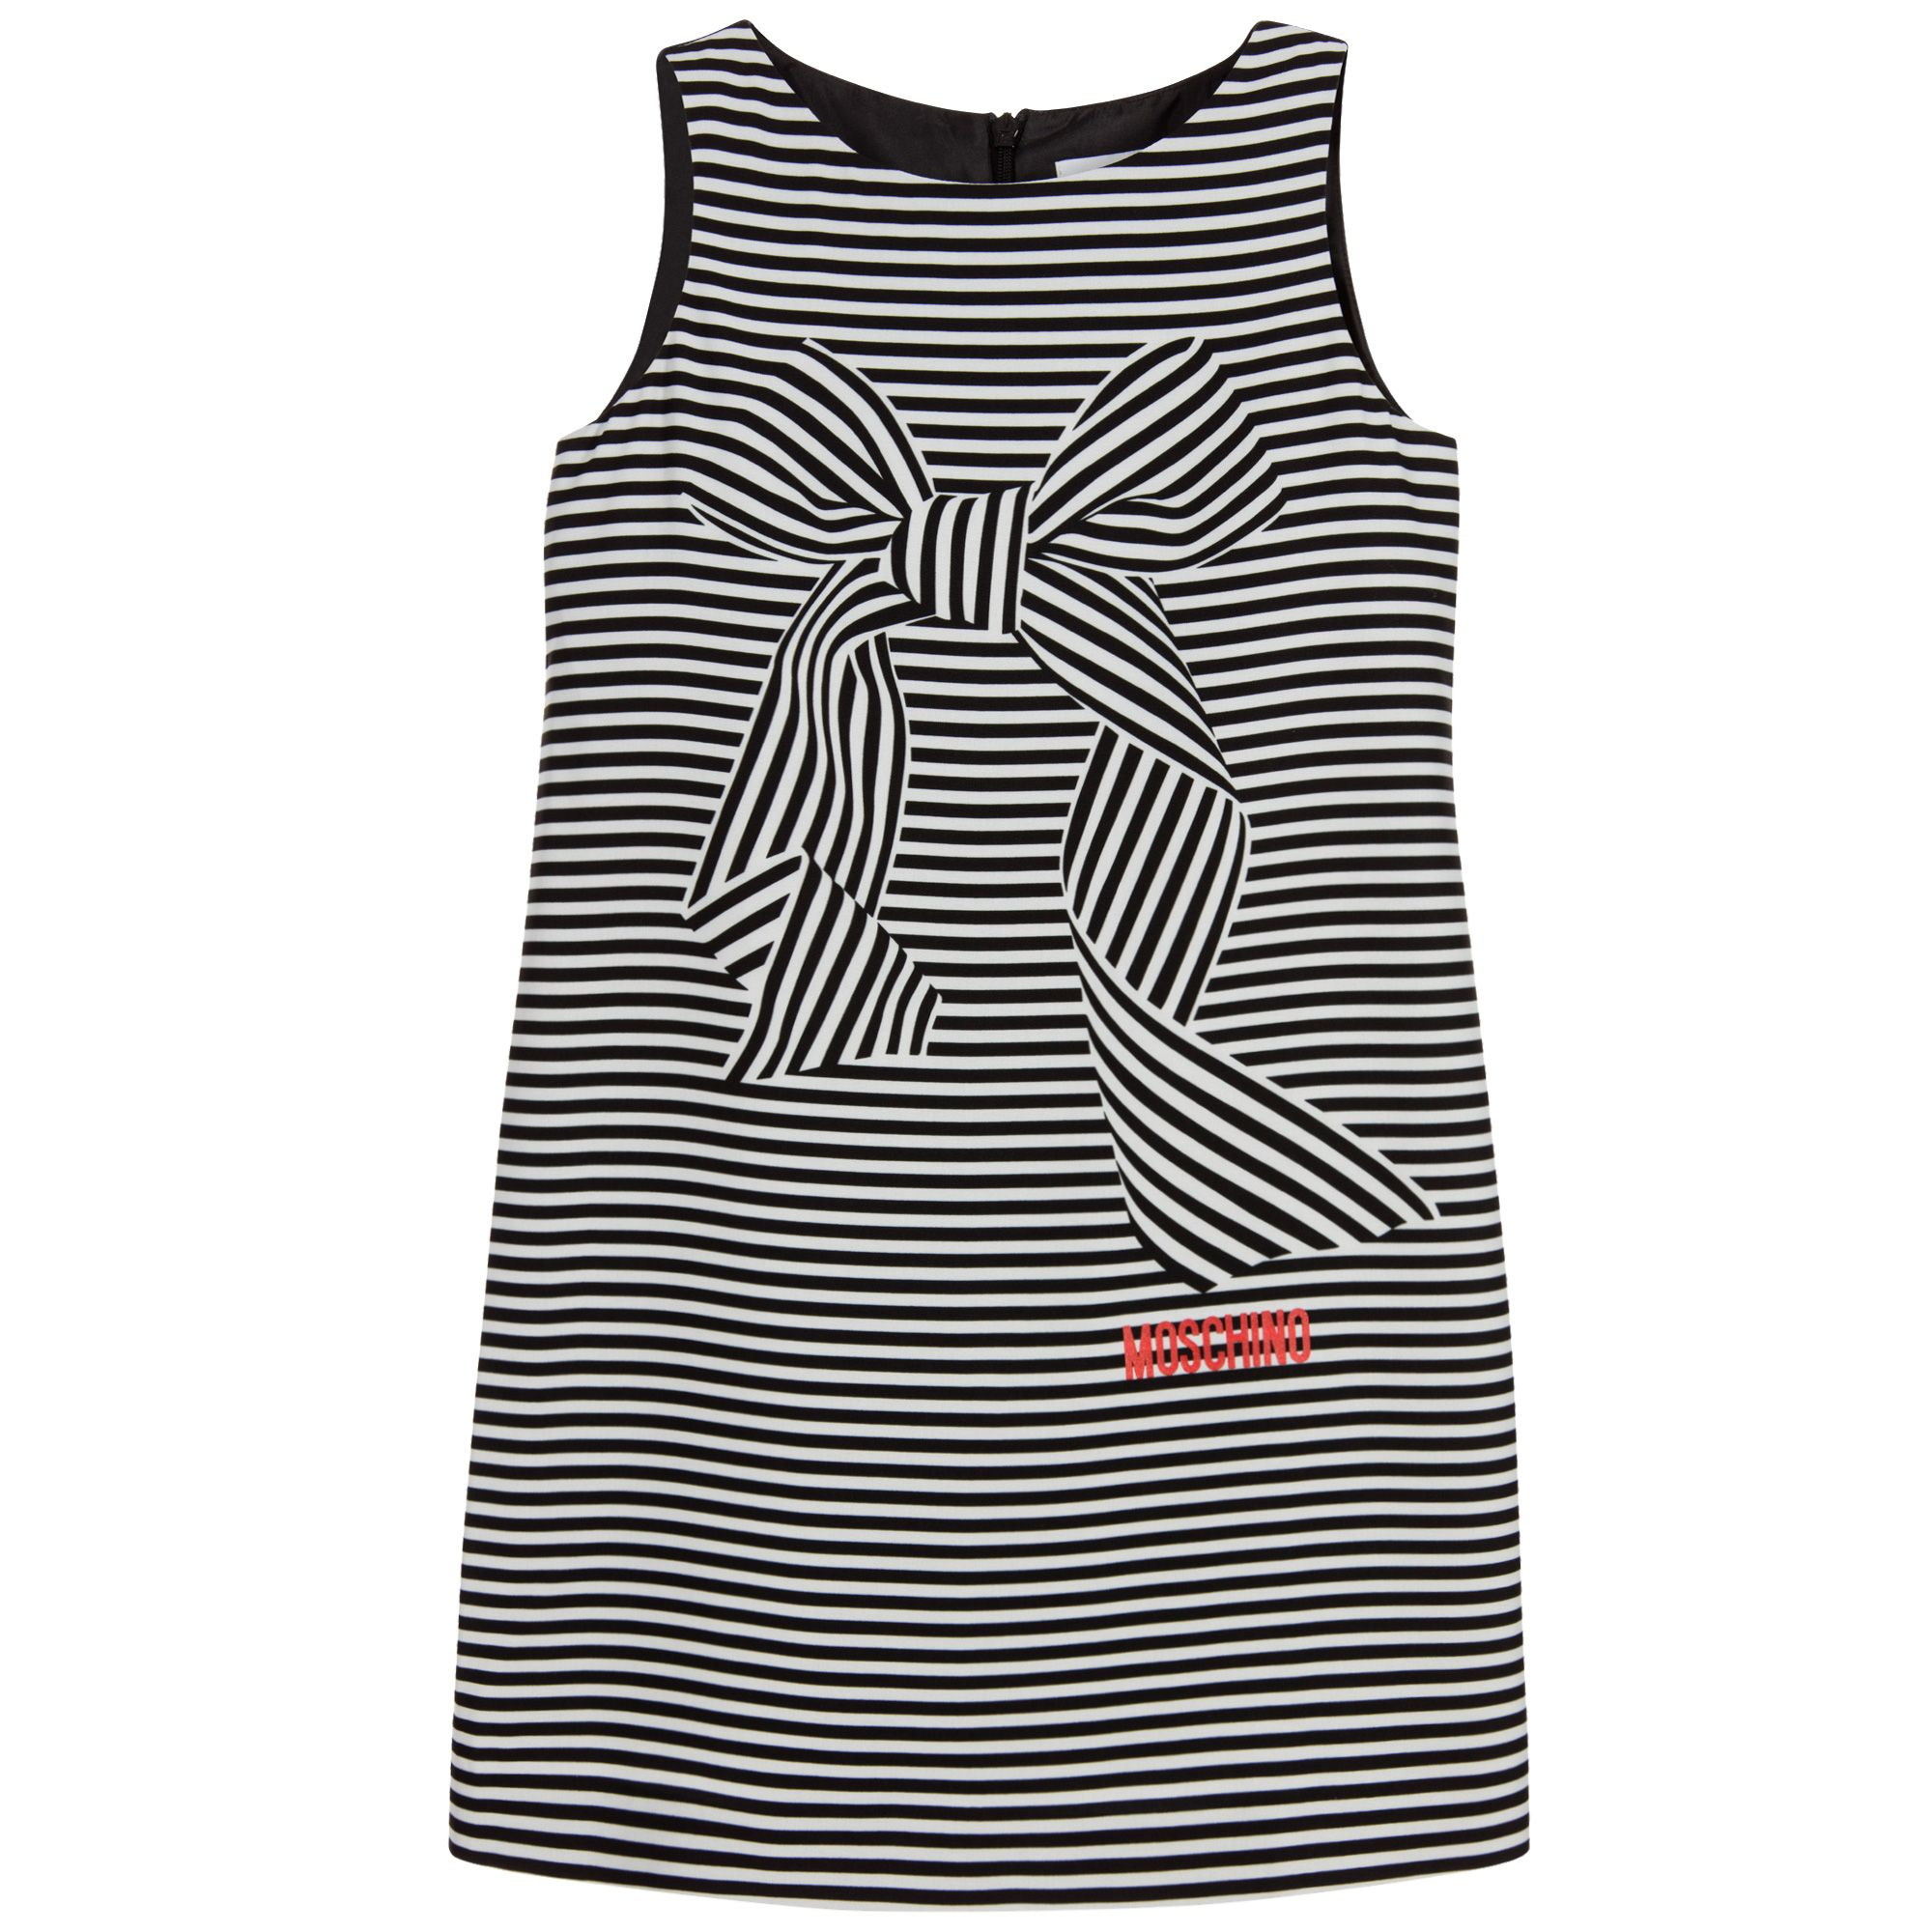 5d12b767875 Girls black and white dress by Moschino Kid-Teen. This shift style dress  has an eye-catching striped print on the front with a large bow detail and  branded ...